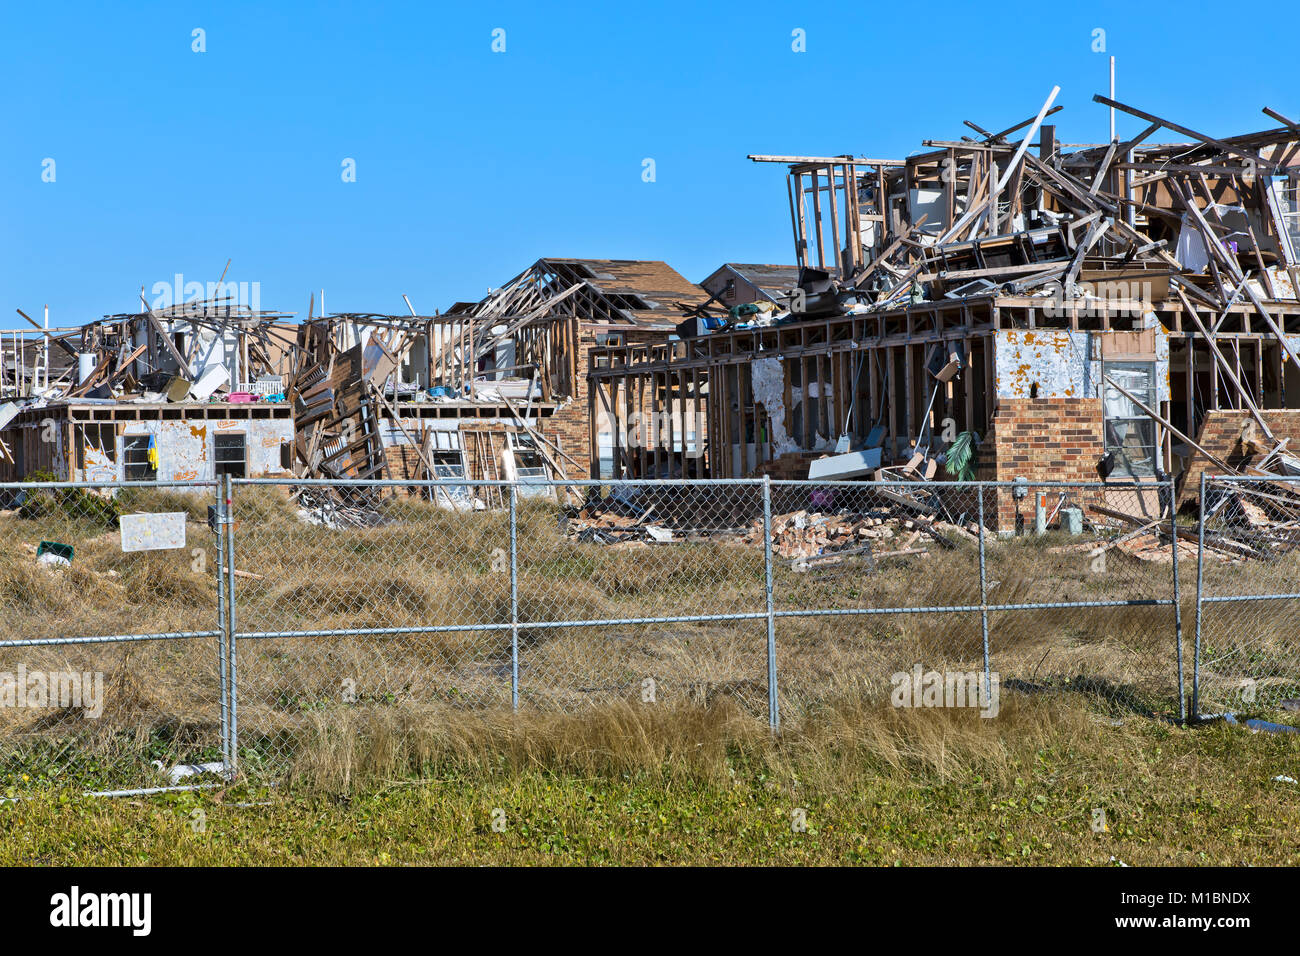 Multiple apartment complex totally destroyed by hurricane Harvey, August 2017. - Stock Image